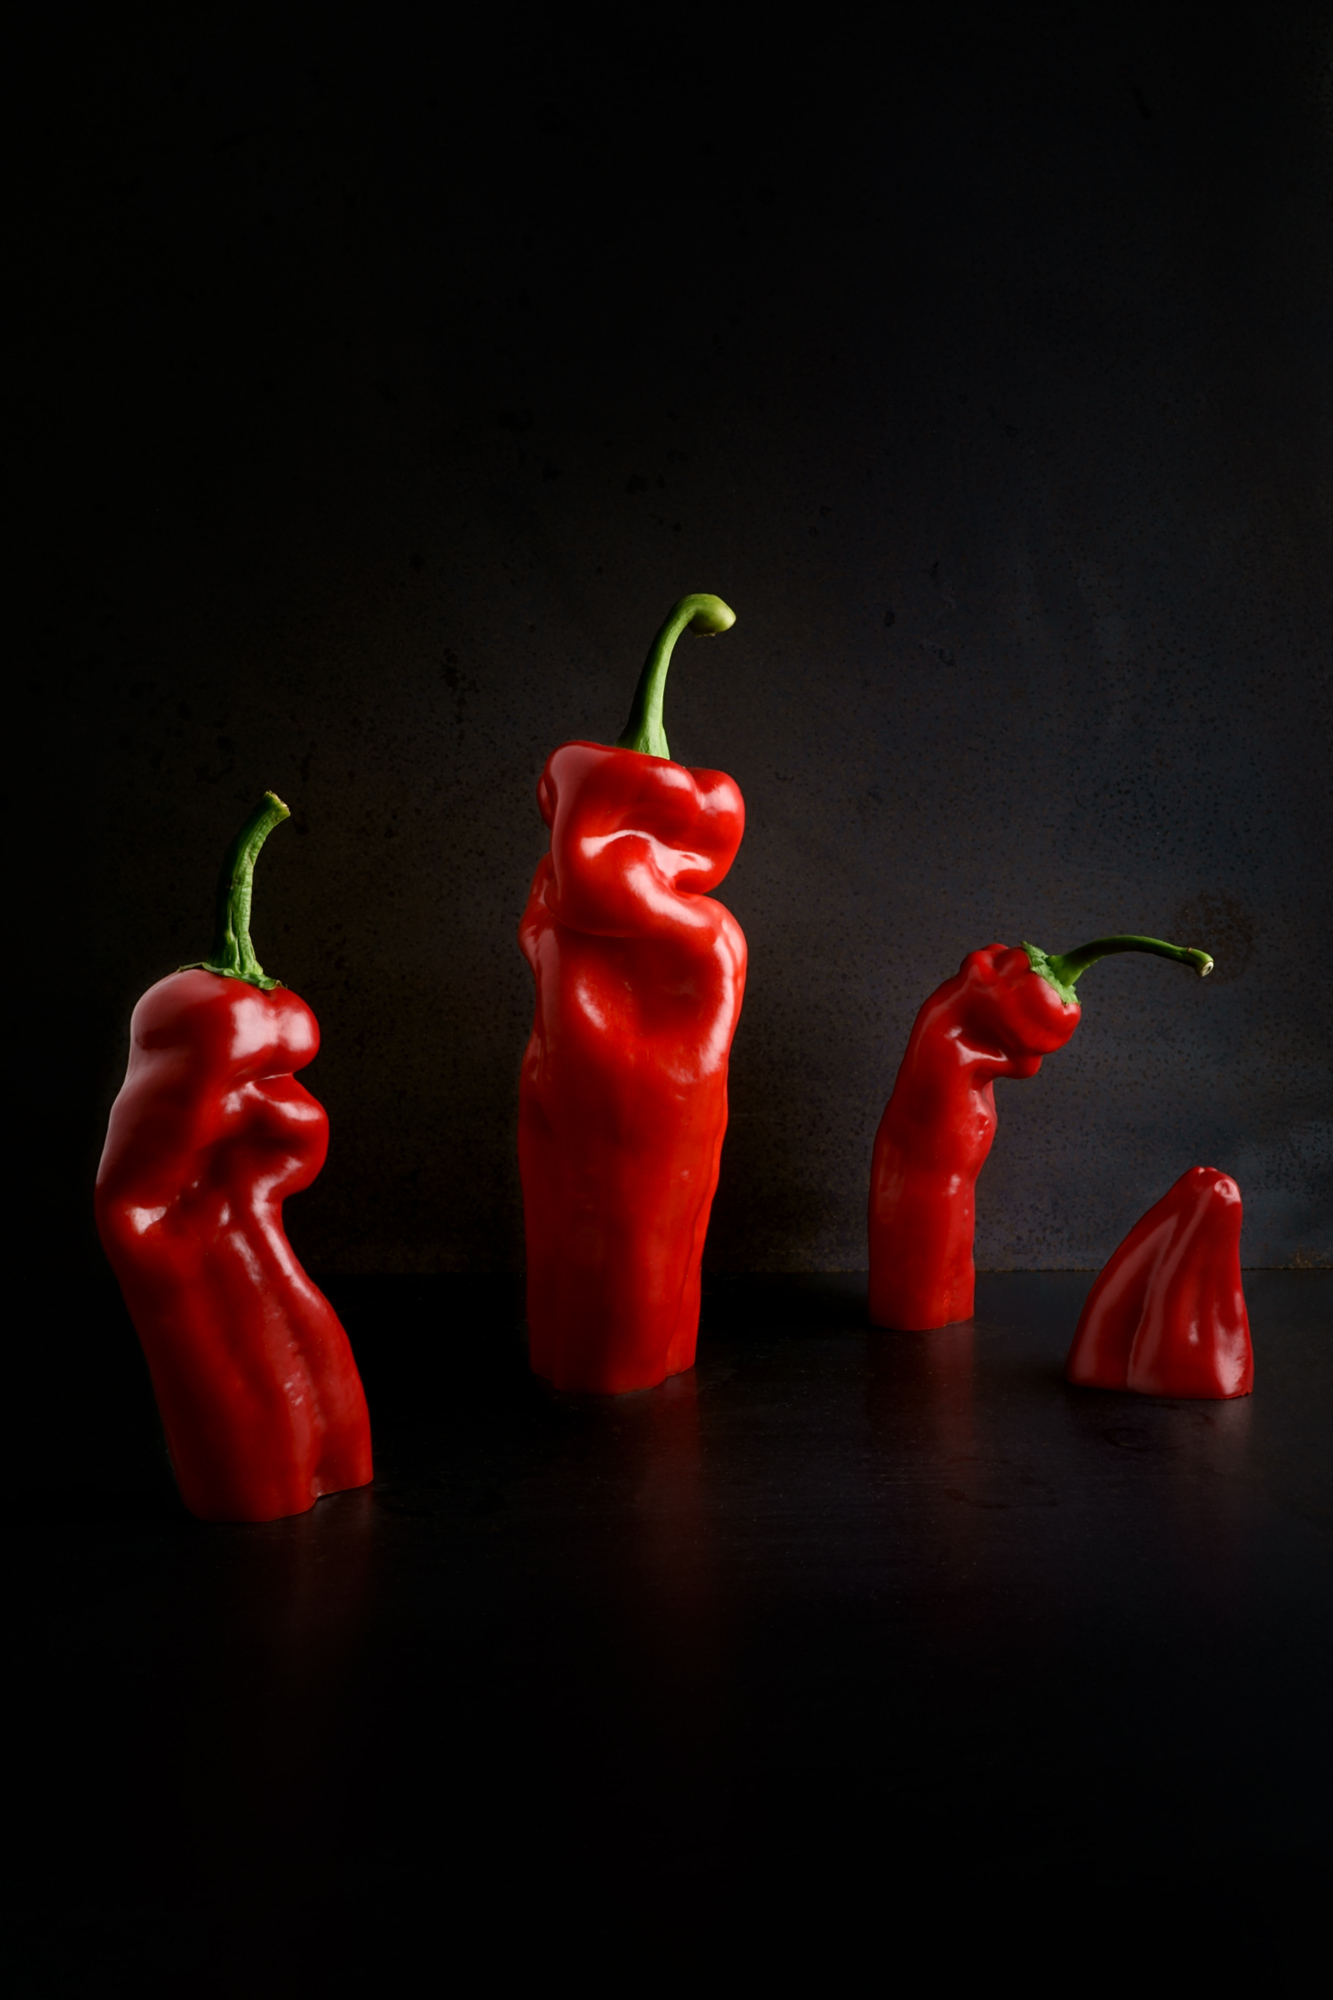 Kevin Mallett - dancing peppers